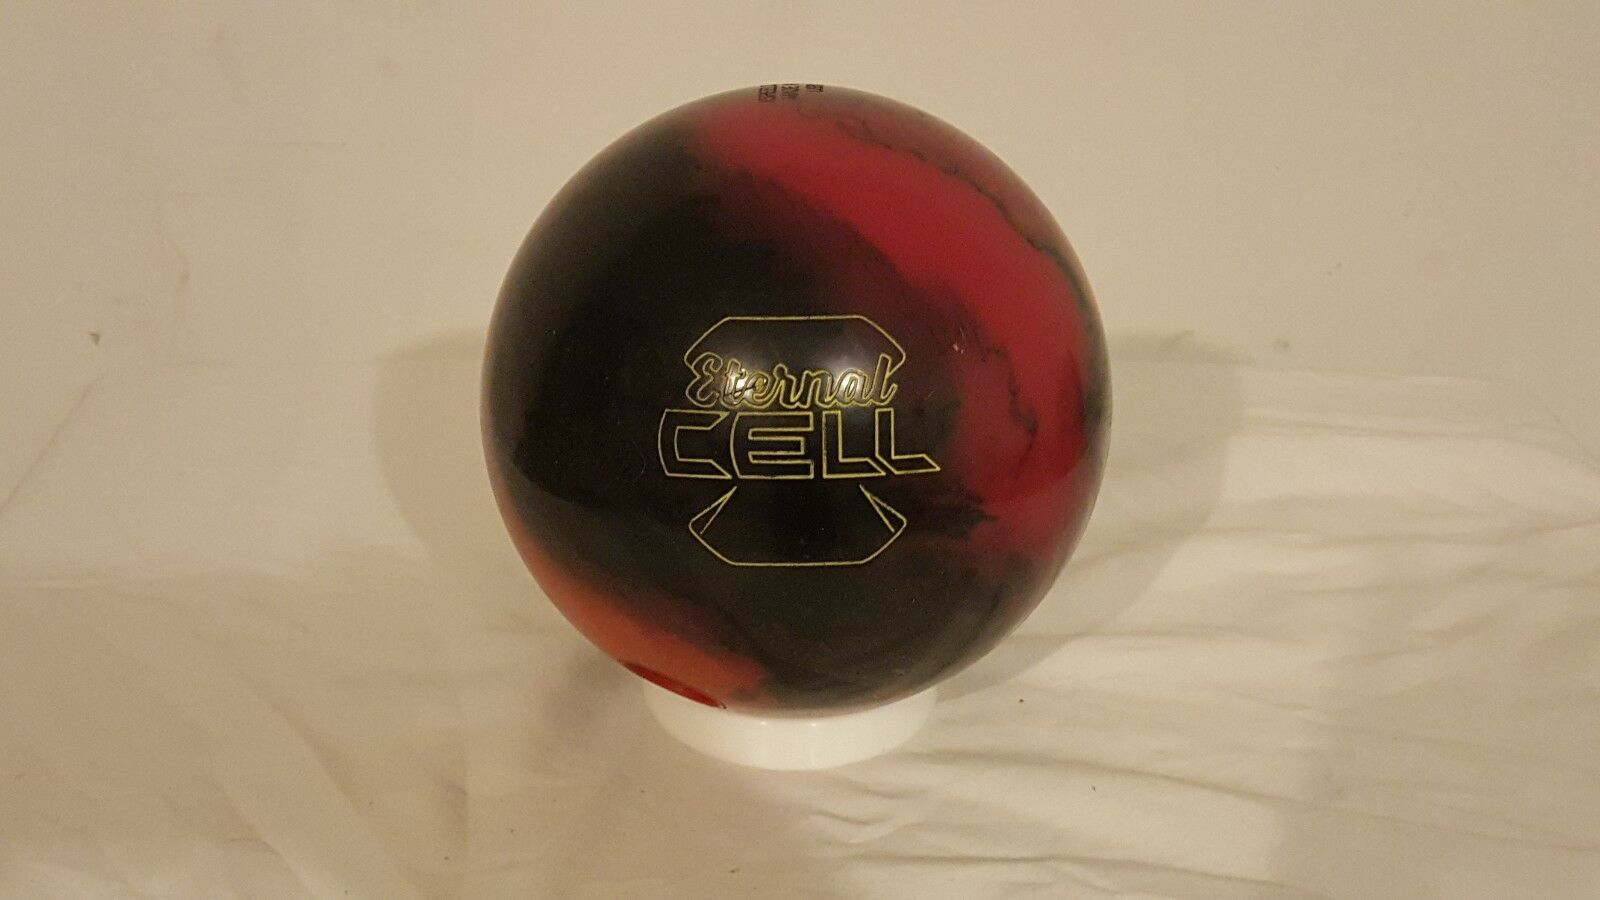 15lb redO GRIP ETERNAL CELL BOWLING BALL - USED